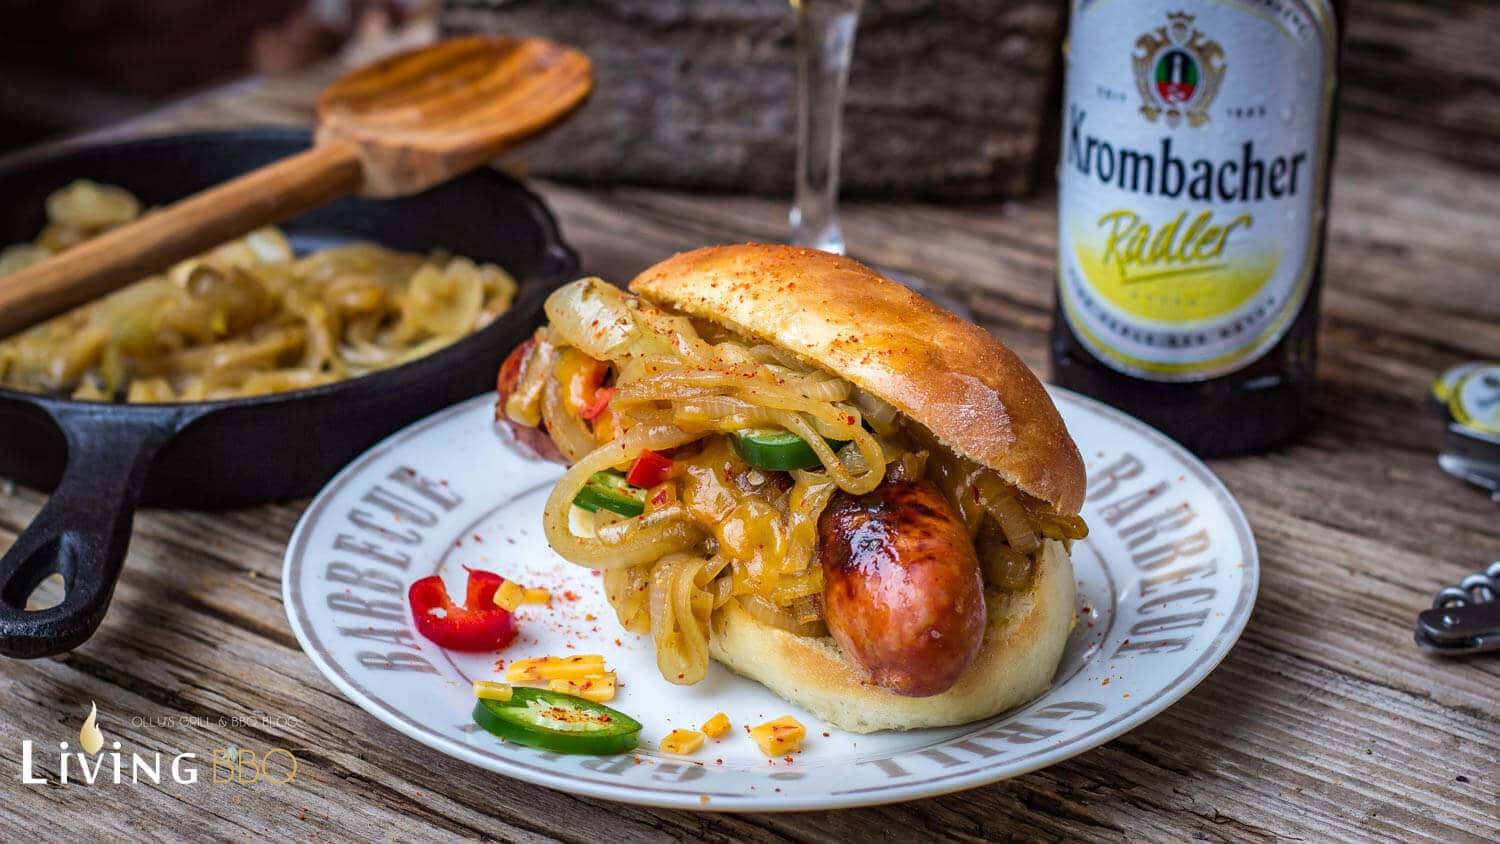 Hot Dog Bier Bratwurst